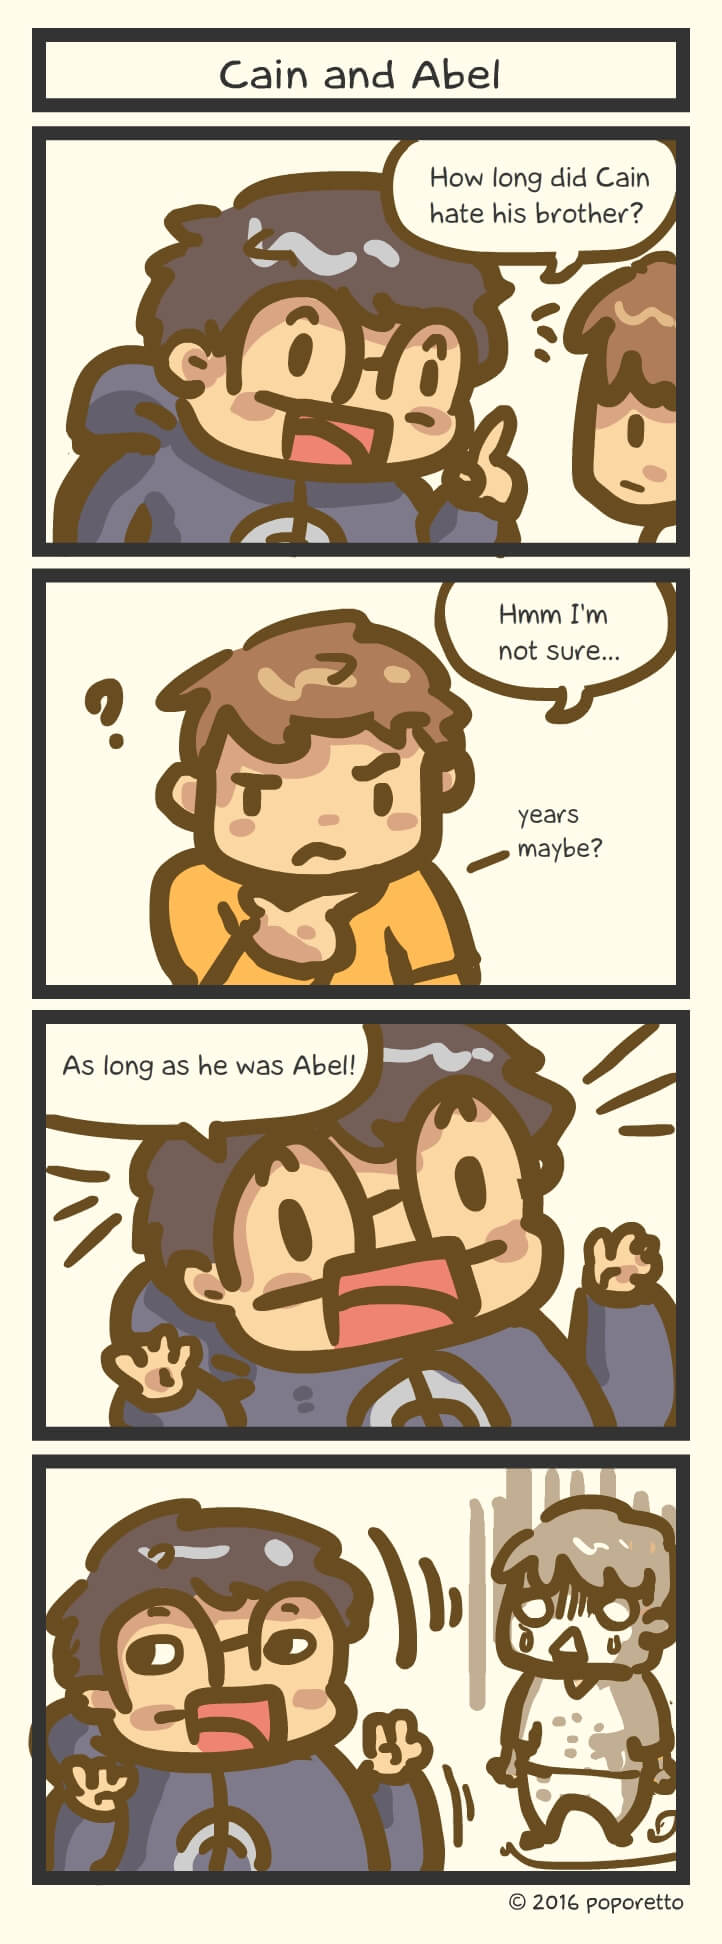 Cain and able christian joke comic strip